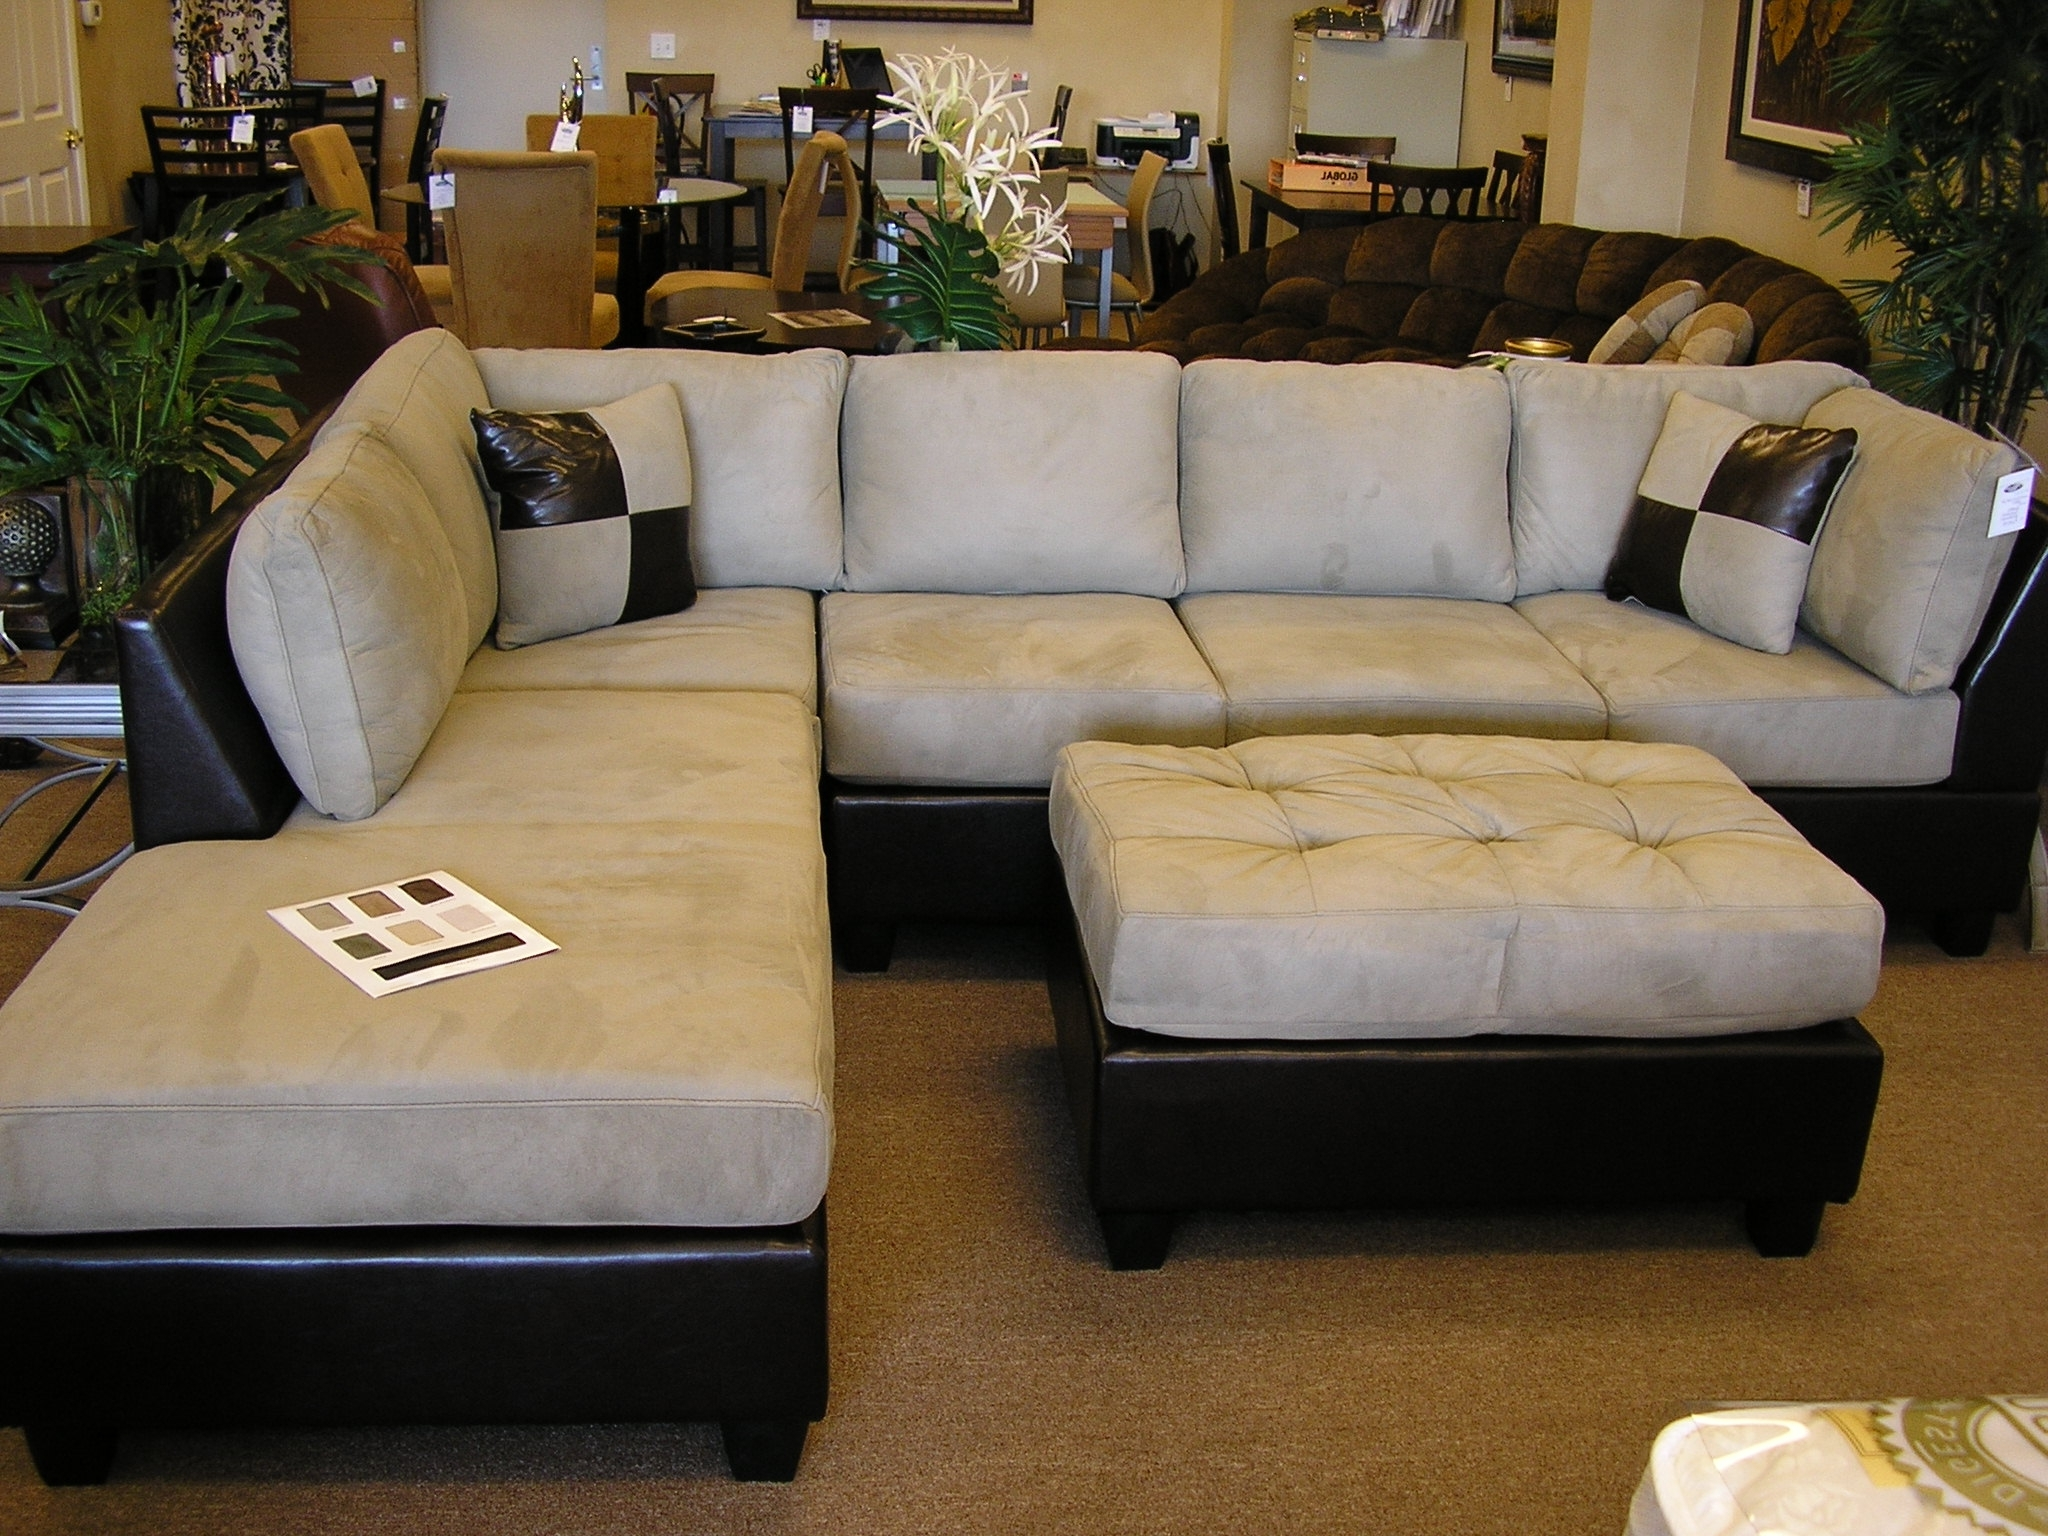 Awesome Sofa With Chaise Lounge 57 On Sofas And Couches Set With With Regard To Favorite Sofa Loveseat And Chaise Sets (View 1 of 15)